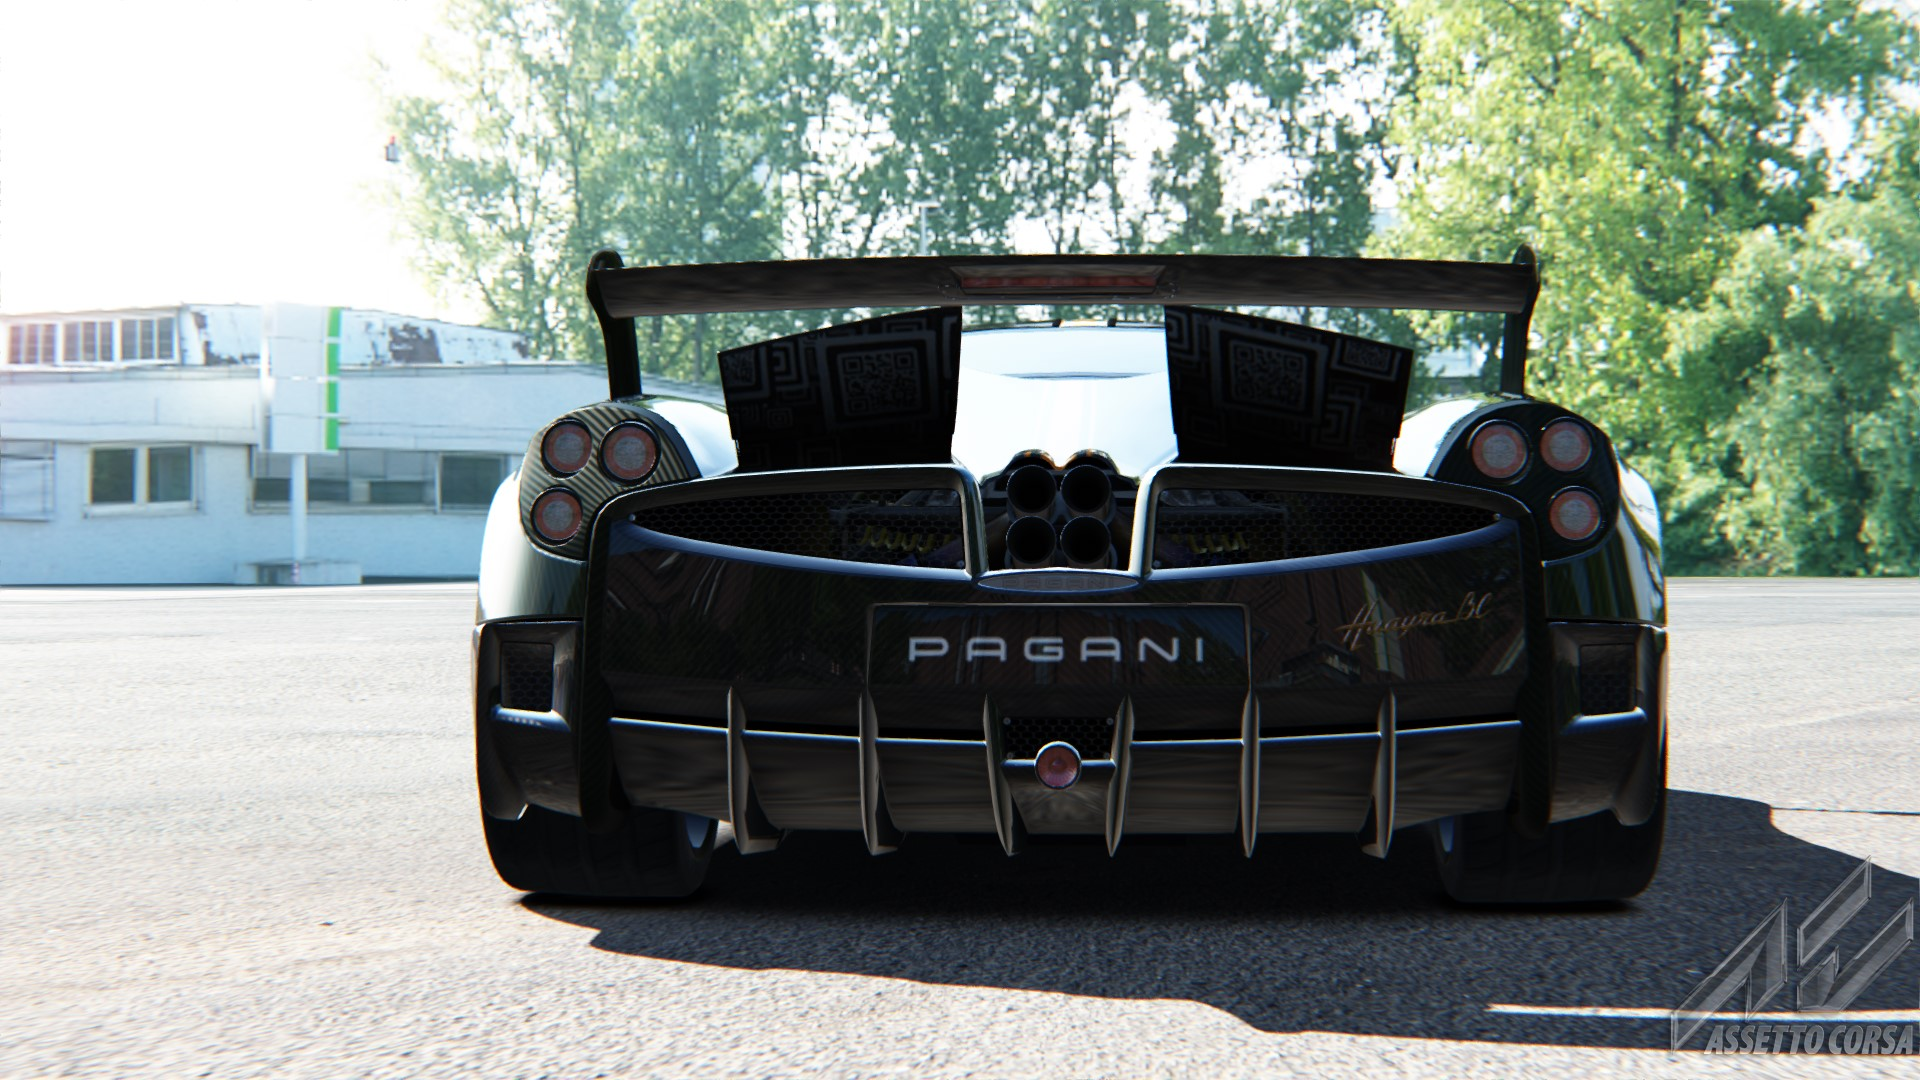 Showroom_ks_pagani_huayra_bc_24-11-2017-9-23-50.jpg